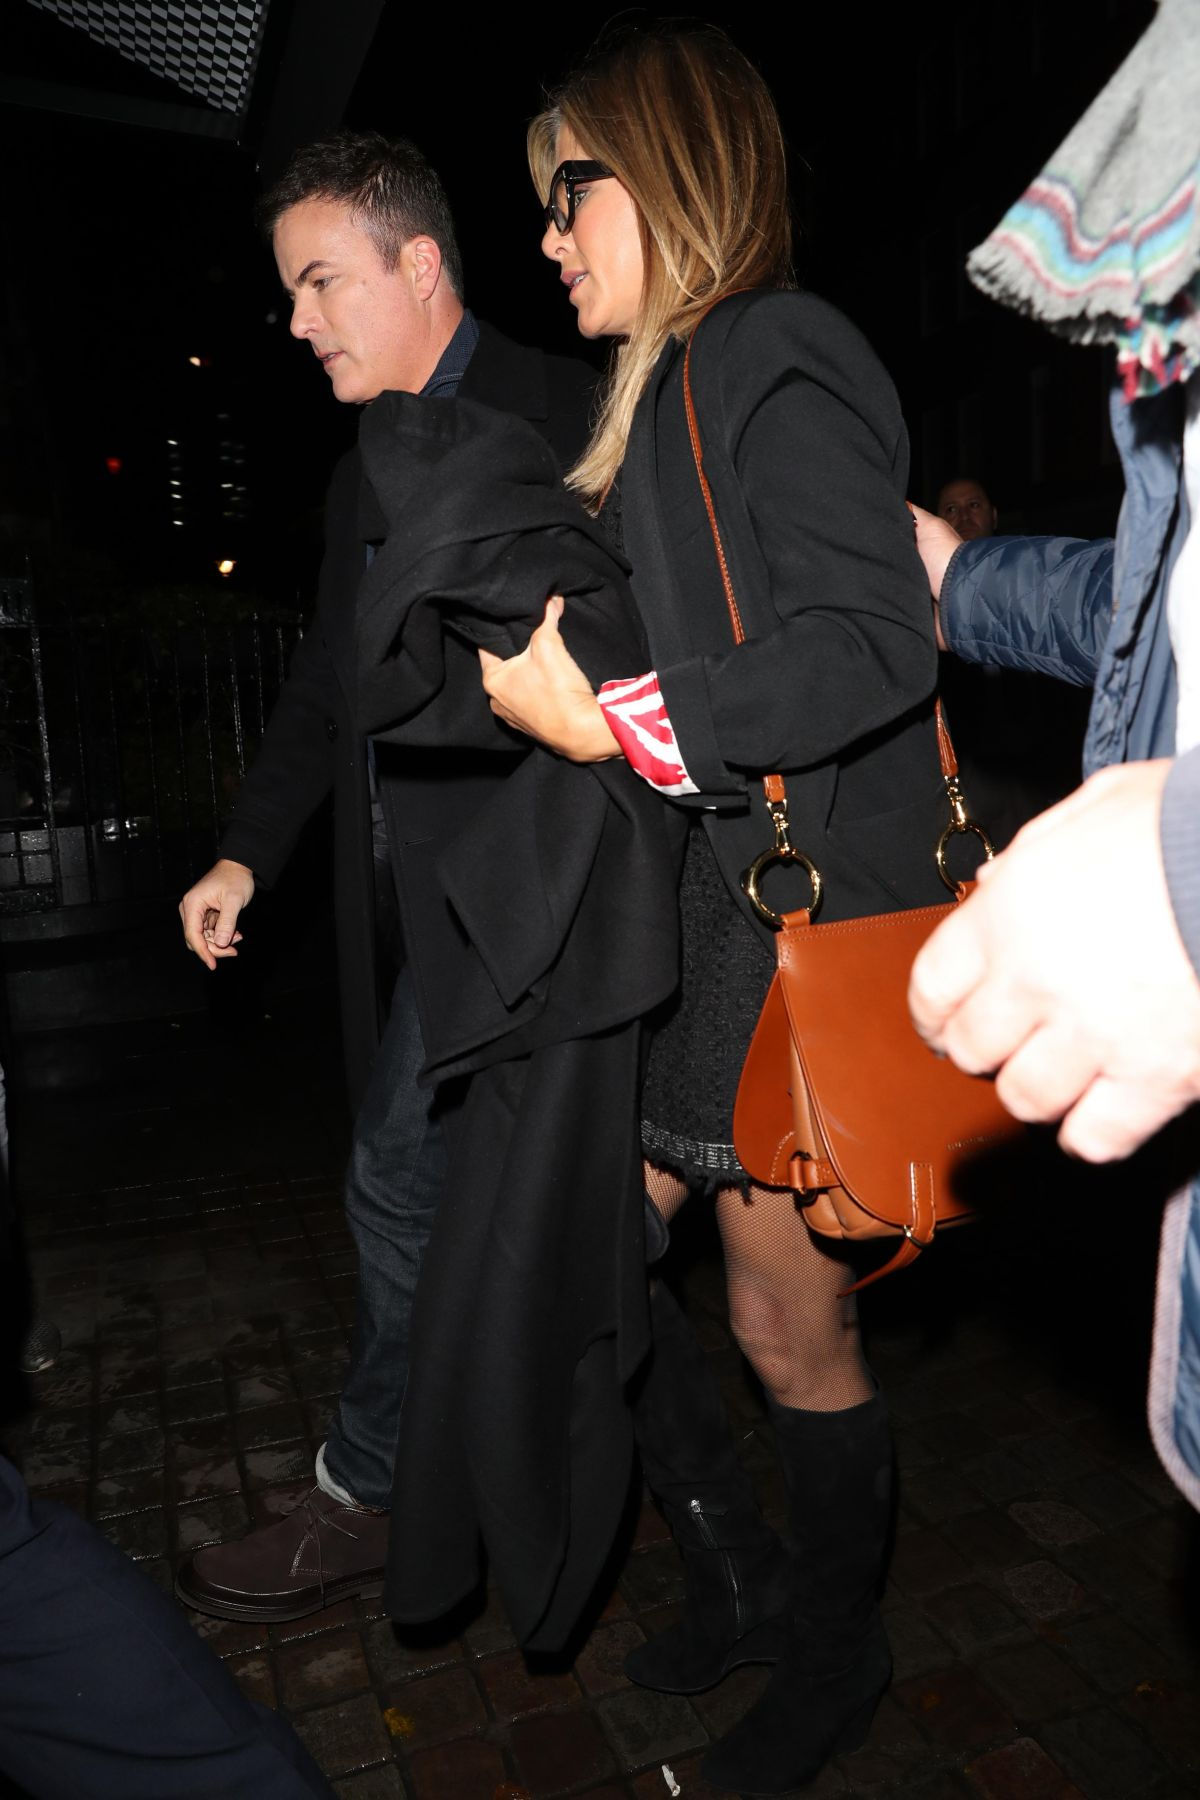 Jennifer Aniston At the Chiltern Firehouse in London   jennifer-aniston-at-the-chiltern-firehouse-in-london_8